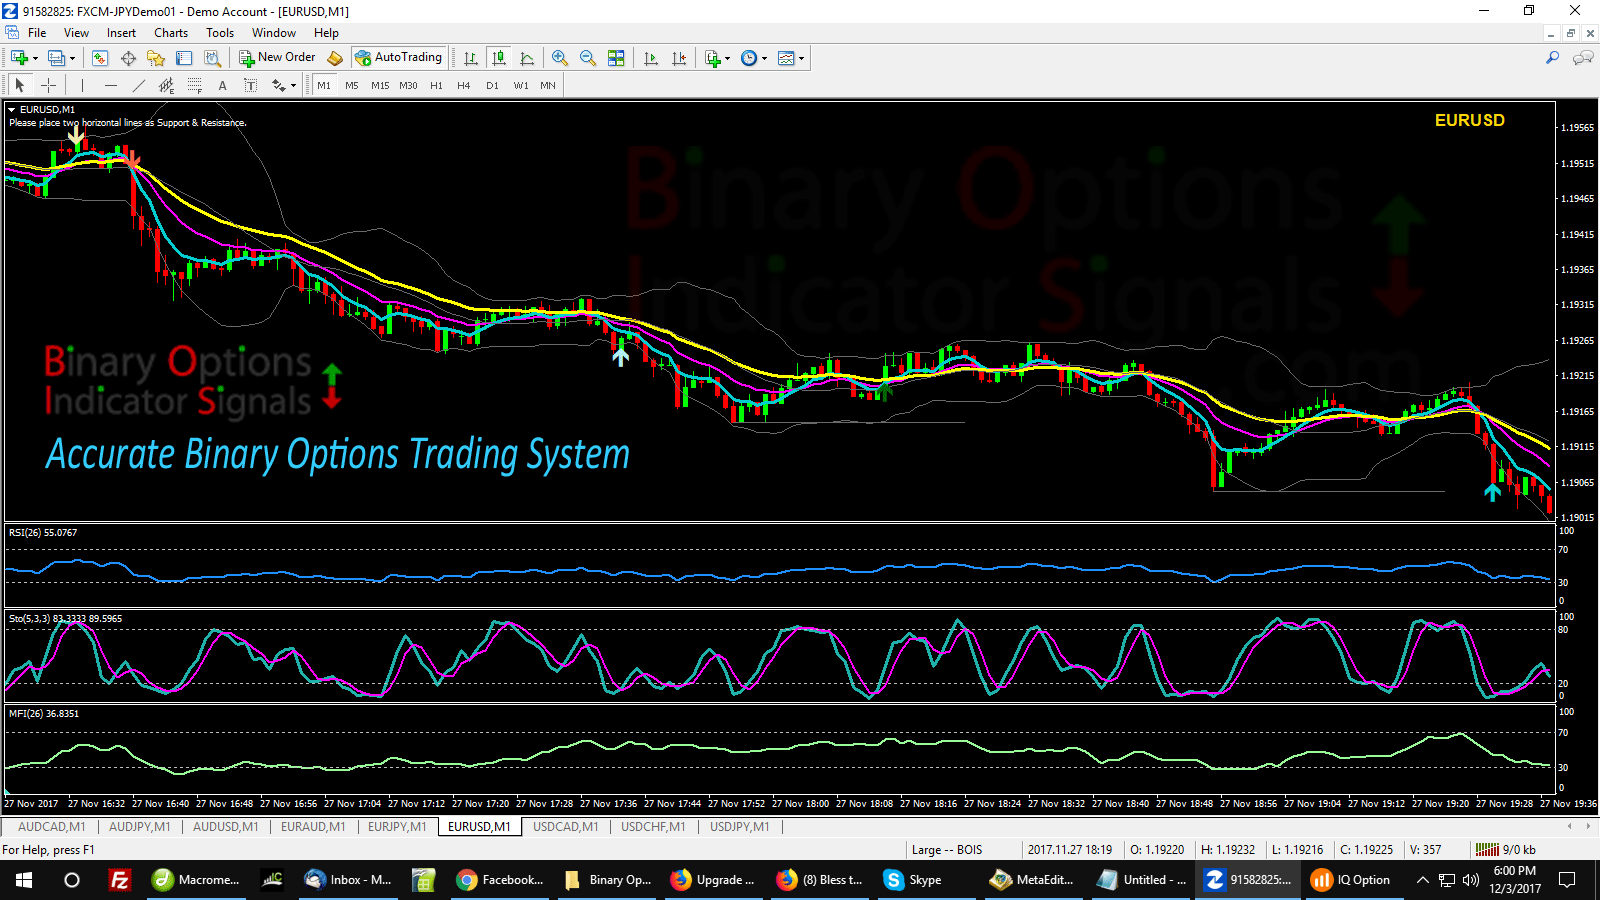 Trading binary options full time